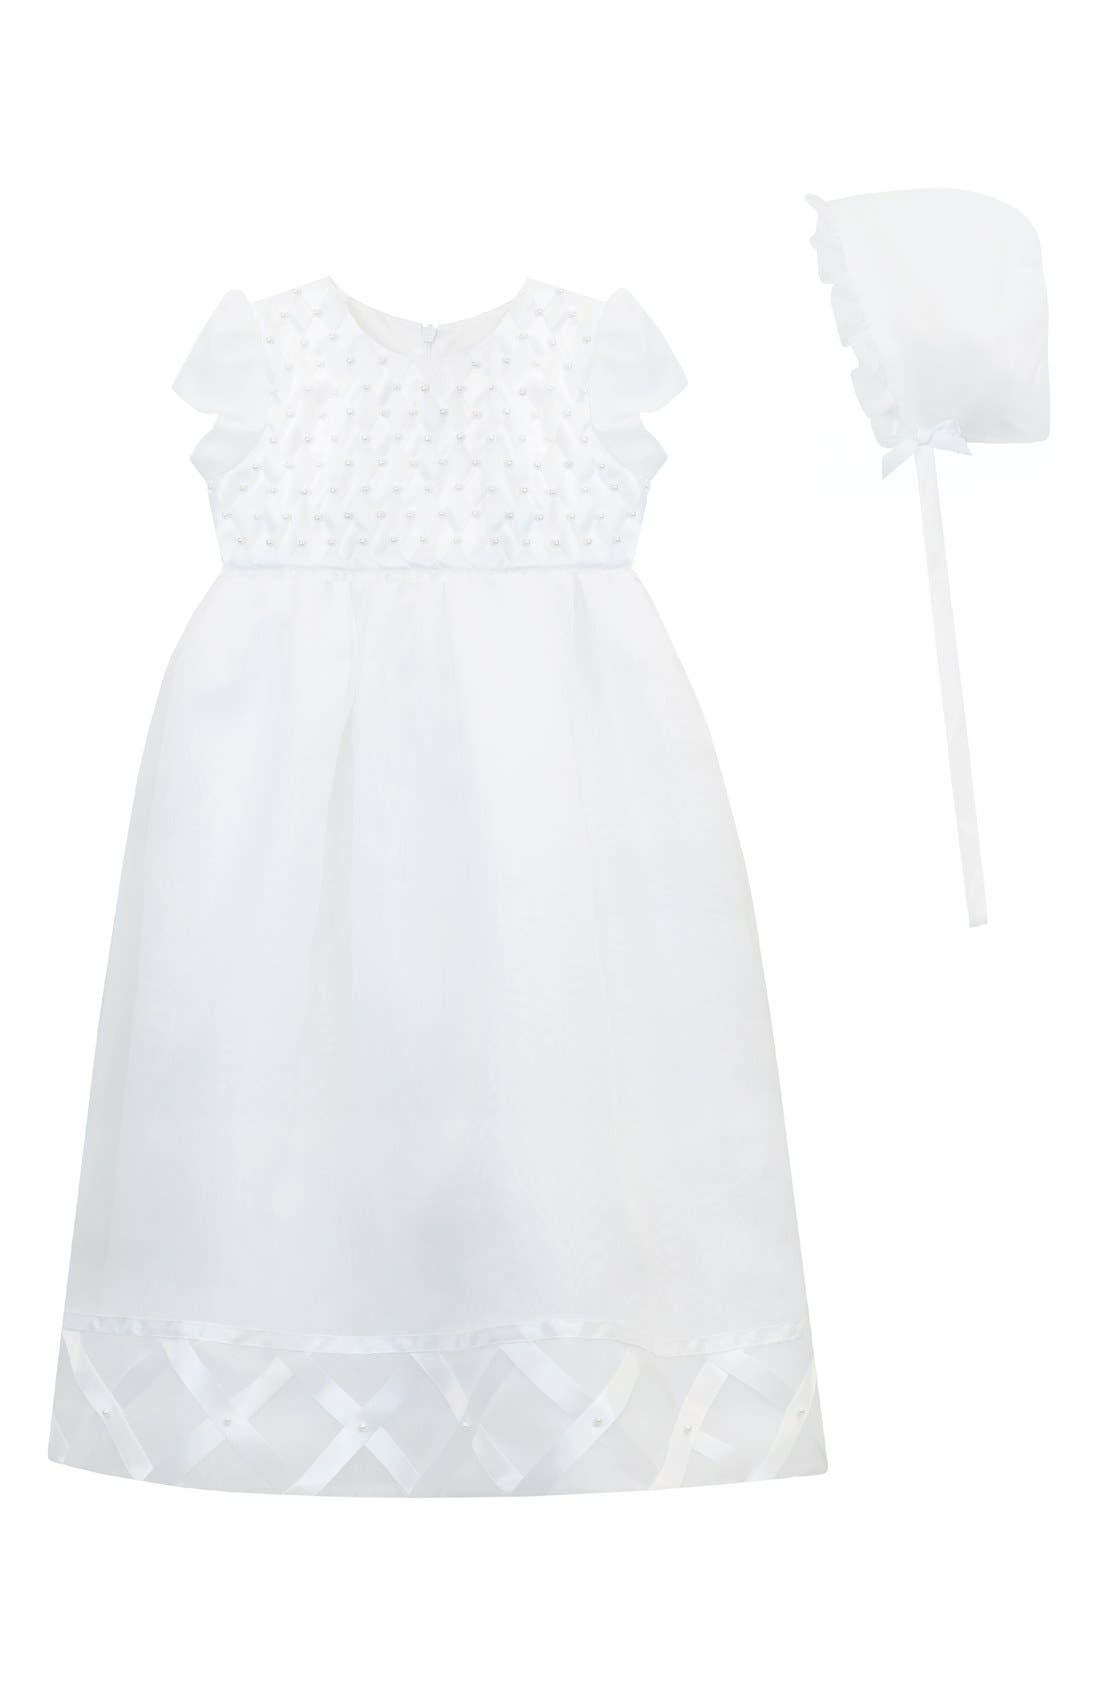 Main Image - C.I. Castro & Co. Christening Gown & Bonnet (Baby Girls)